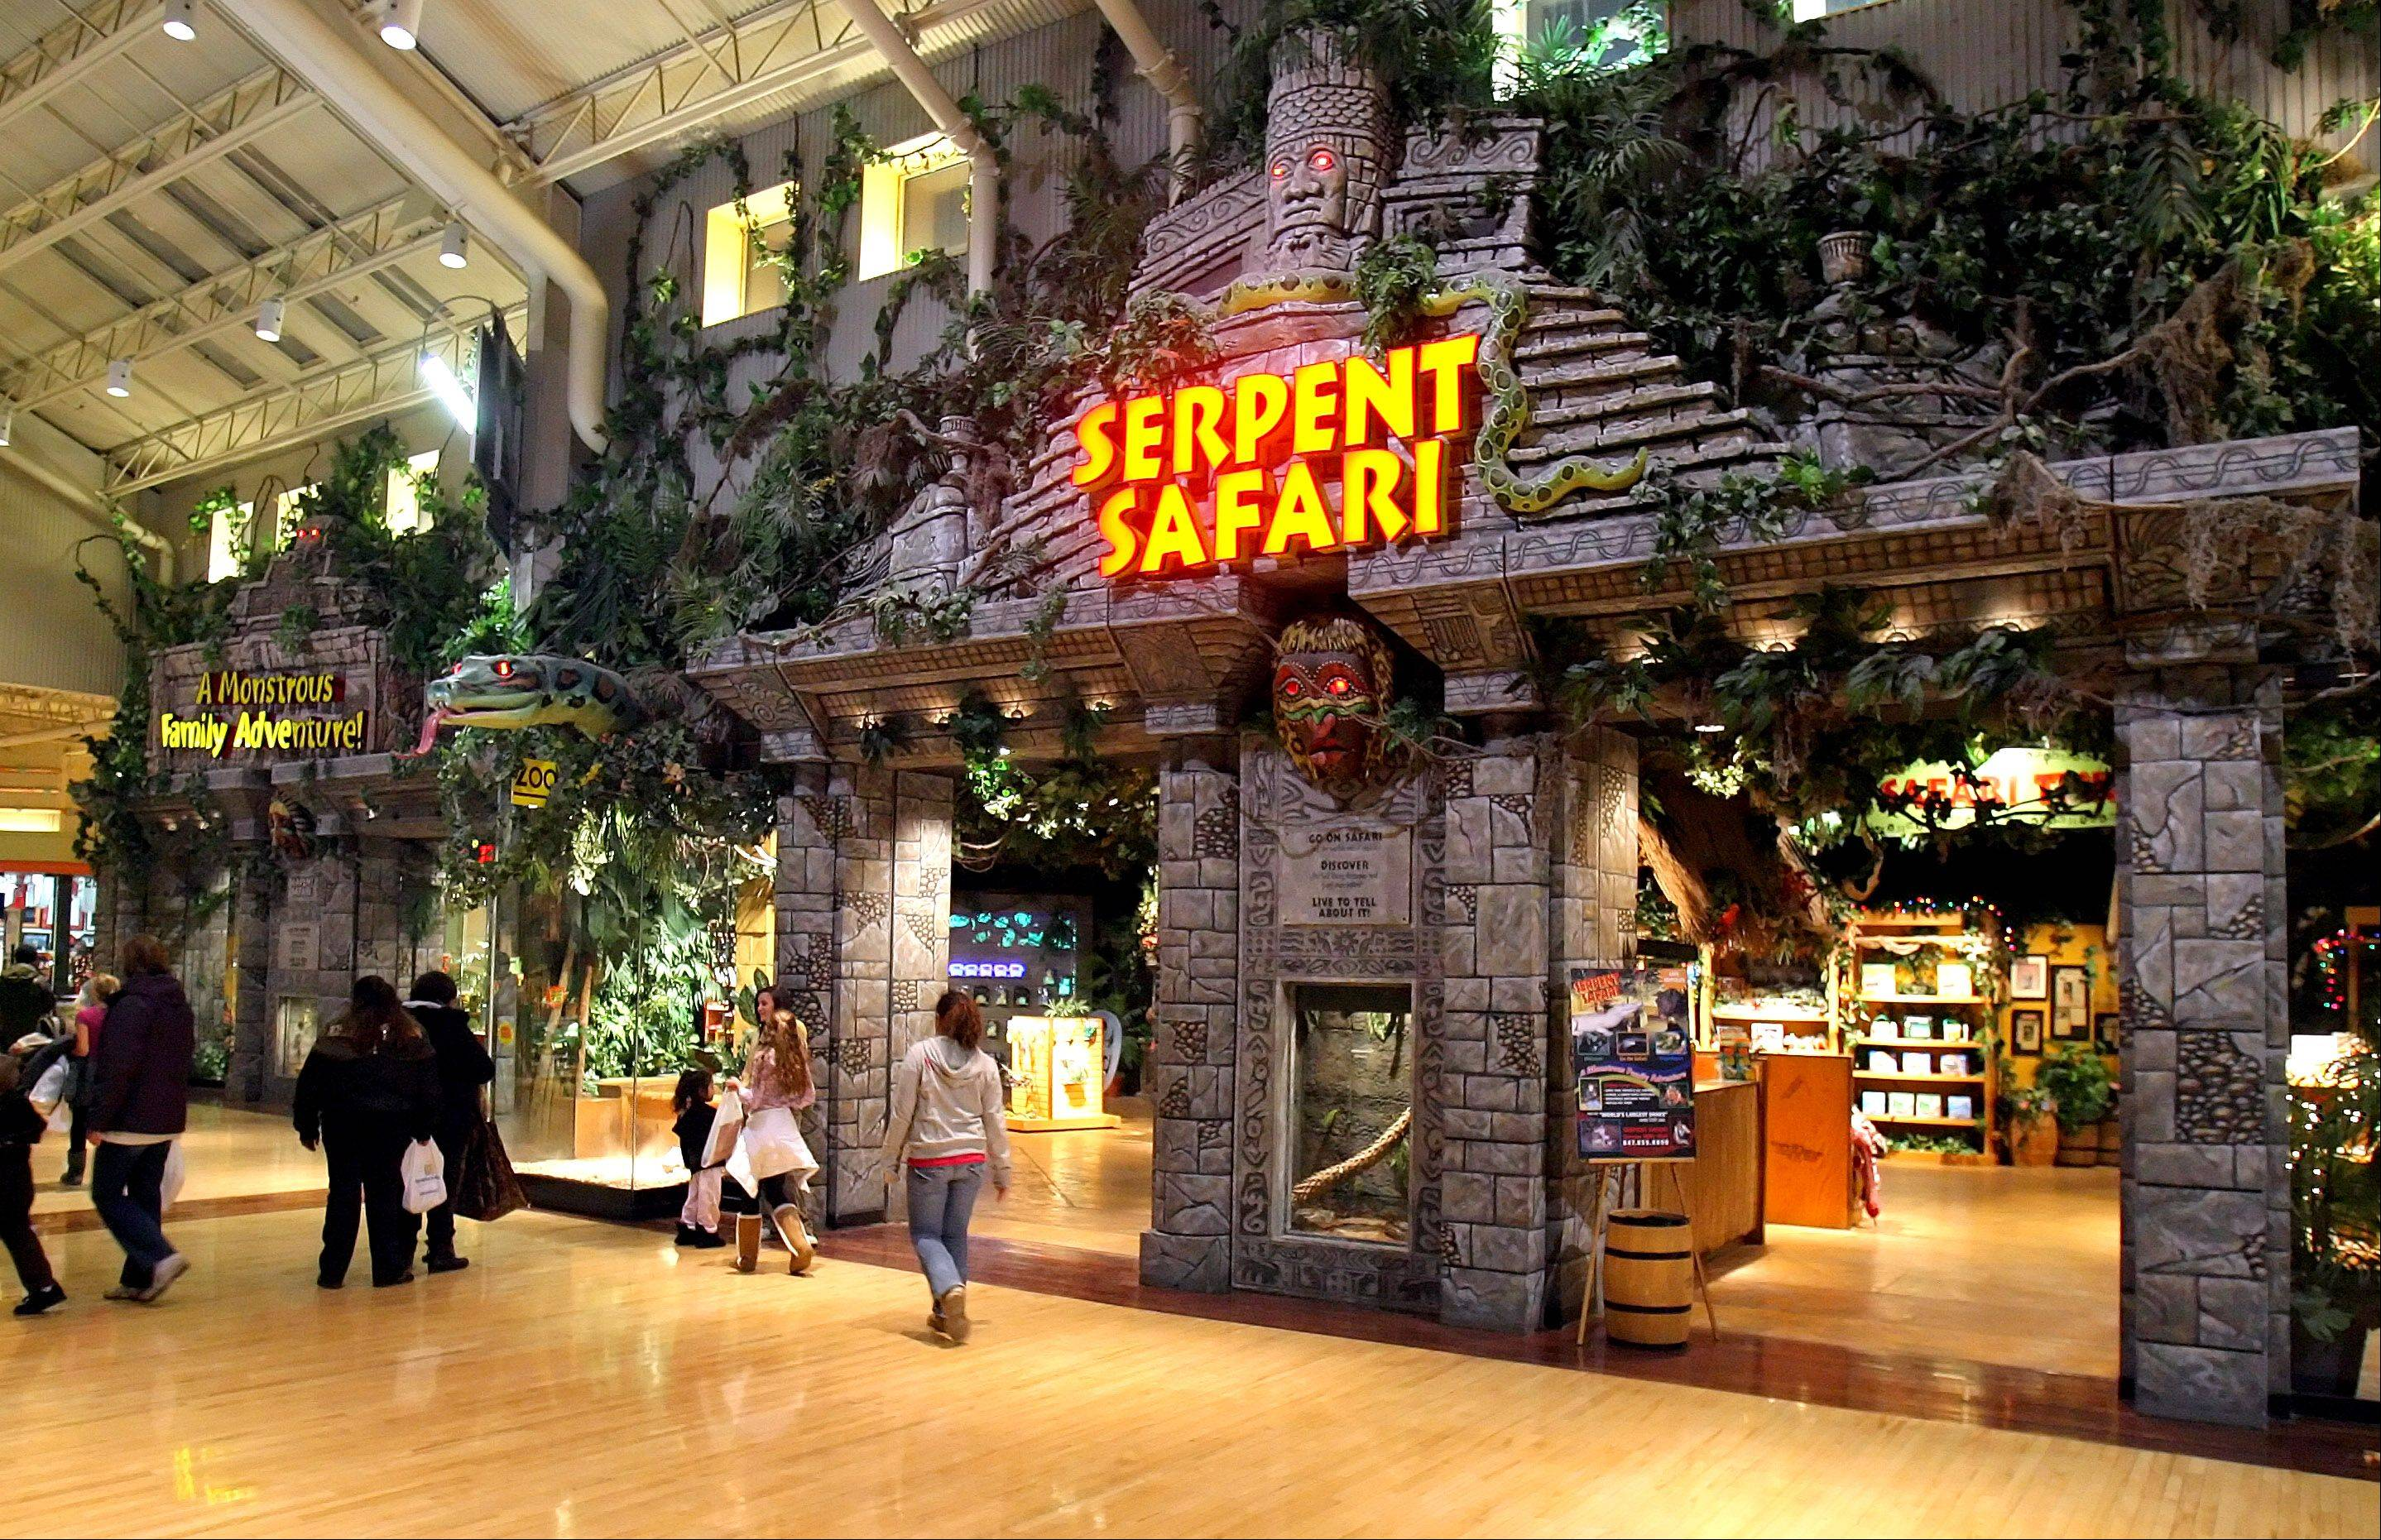 Serpent Safari at Gurnee Mills closed last week.